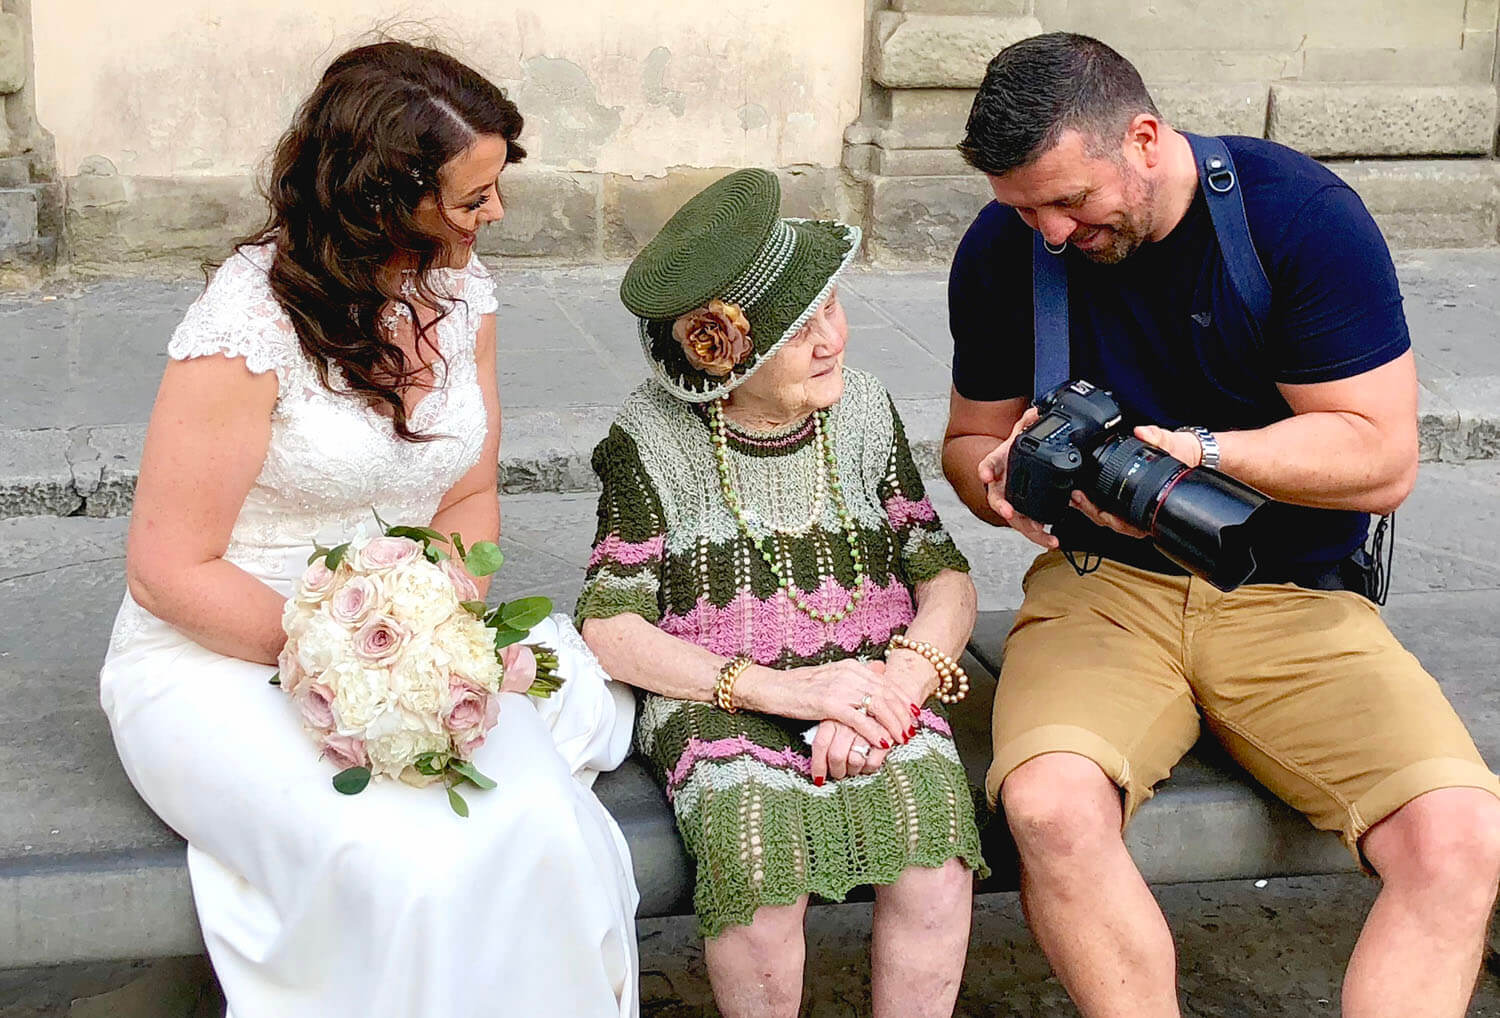 wedding photographer of the year 2019 Wes Simpson showing bride and little old lady the back of his camera